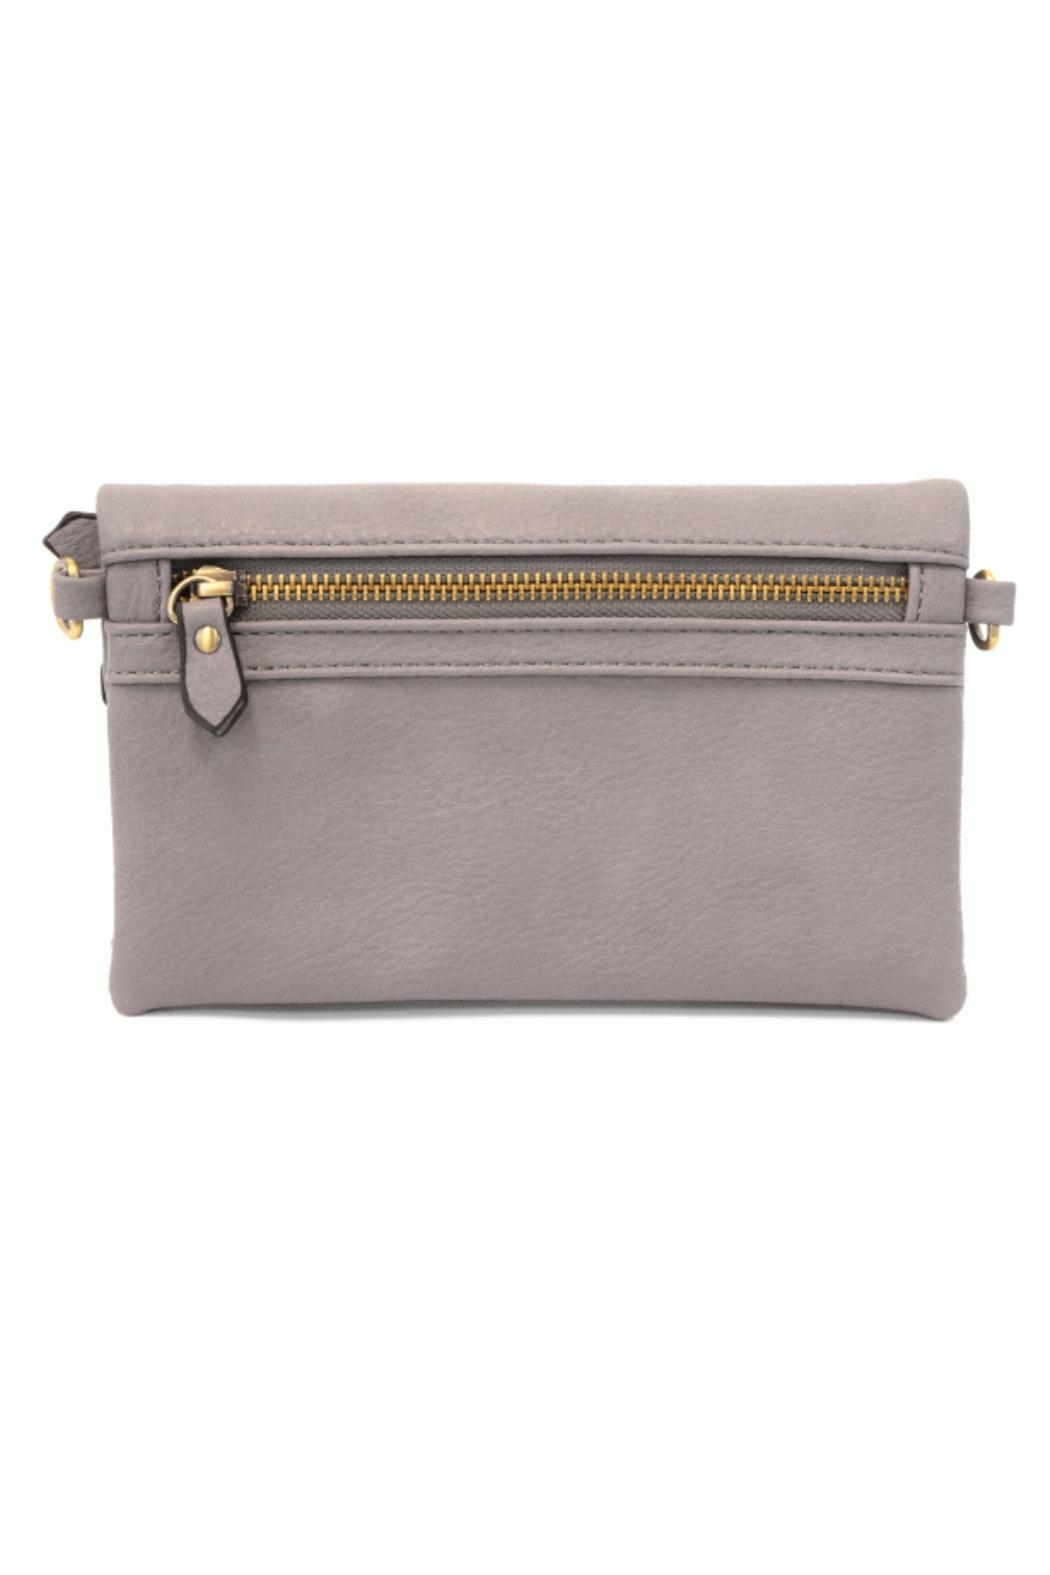 Joy Accessories Kate Crossbody - Wisteria - Side Cropped Image